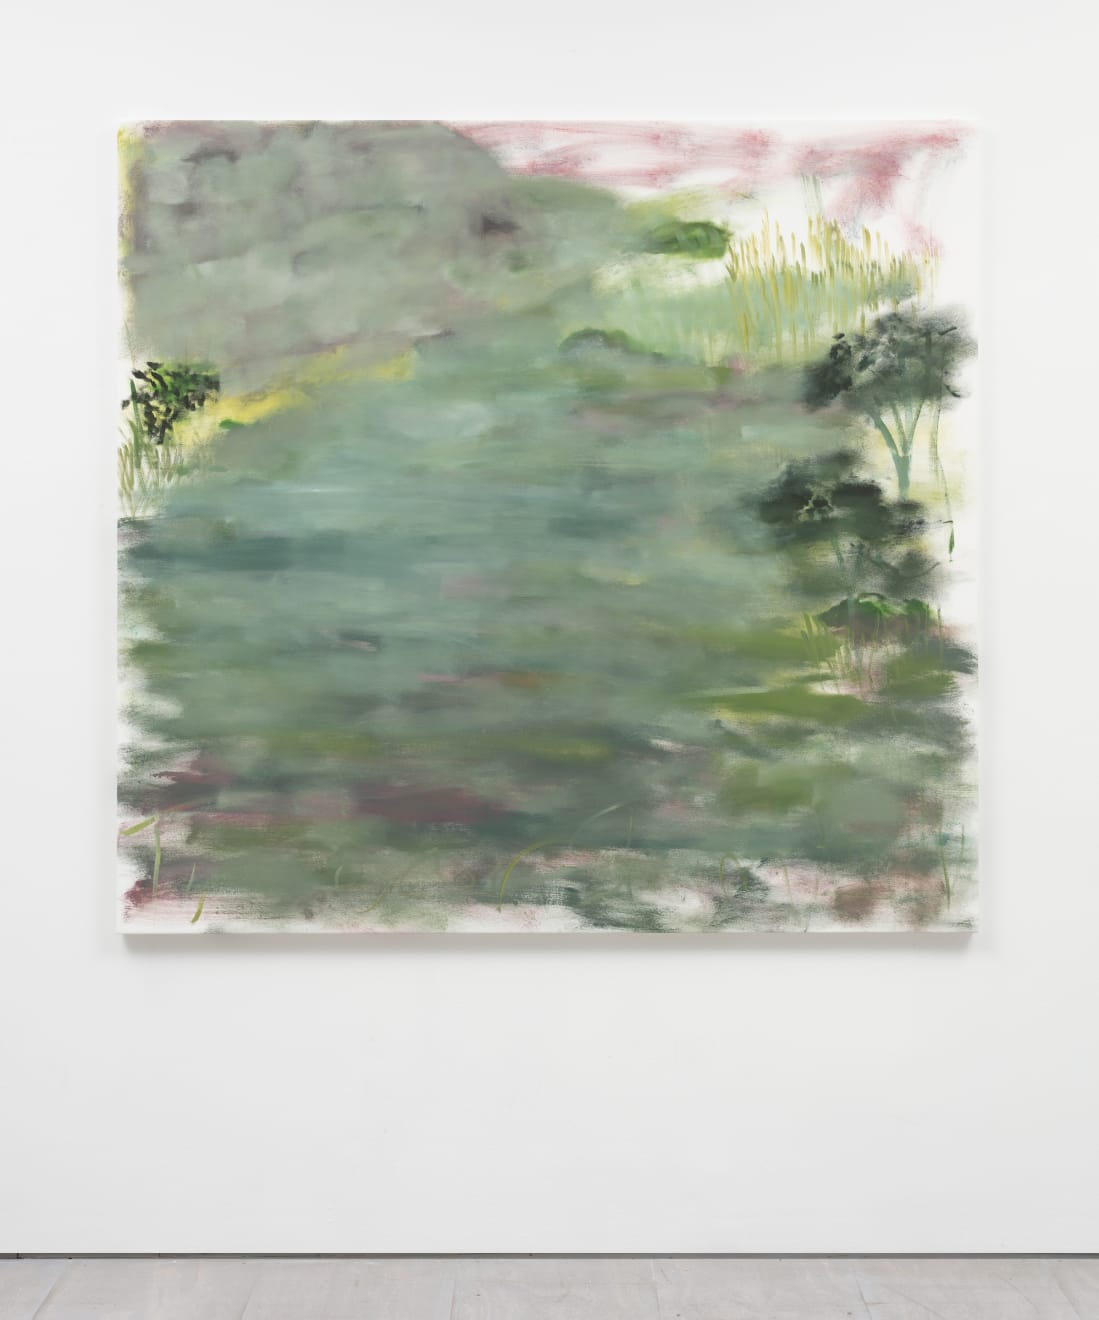 Trevor Shimizu, Water Surrounded by Cliffs and Trees, 2020